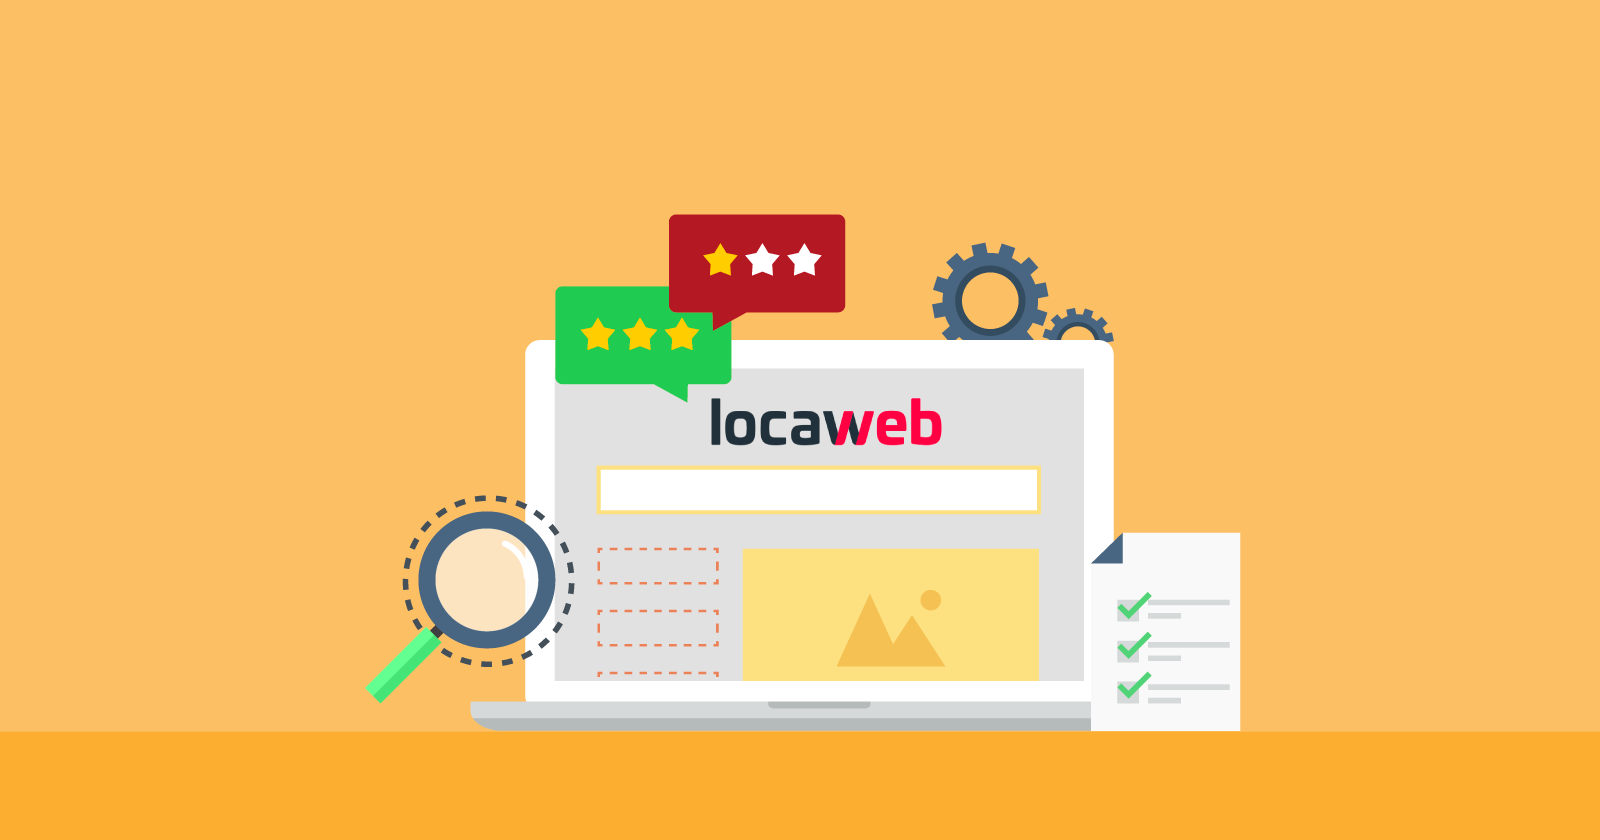 1eccba8df4 Criador de Sites Locaweb [Review] - Tudo Sobre Hospedagem de Sites